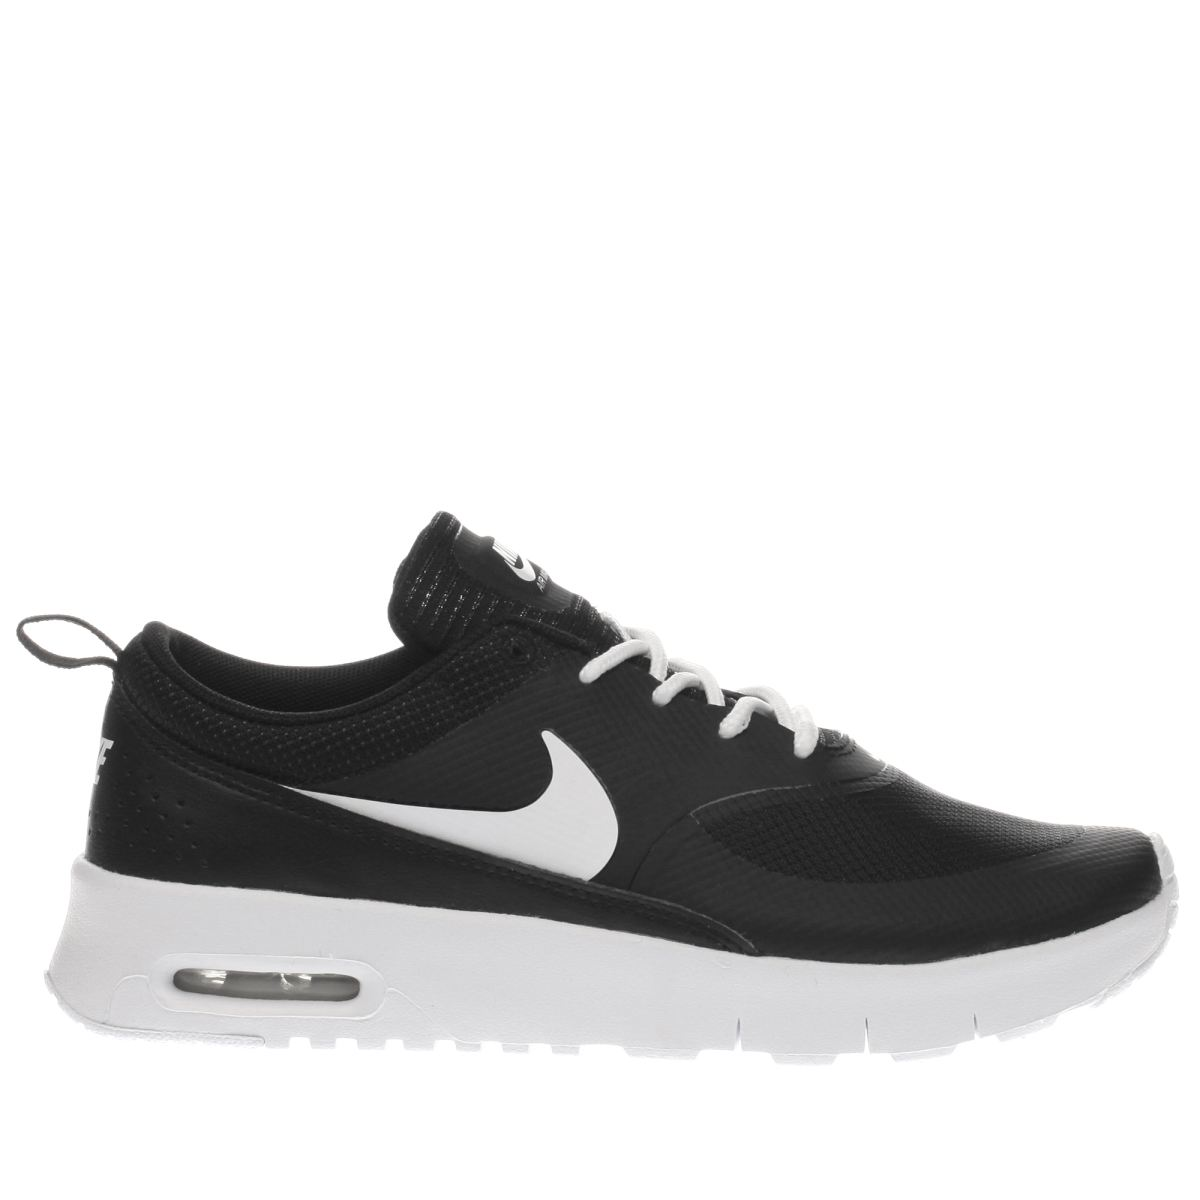 nike black & white air max thea Girls Junior Trainers